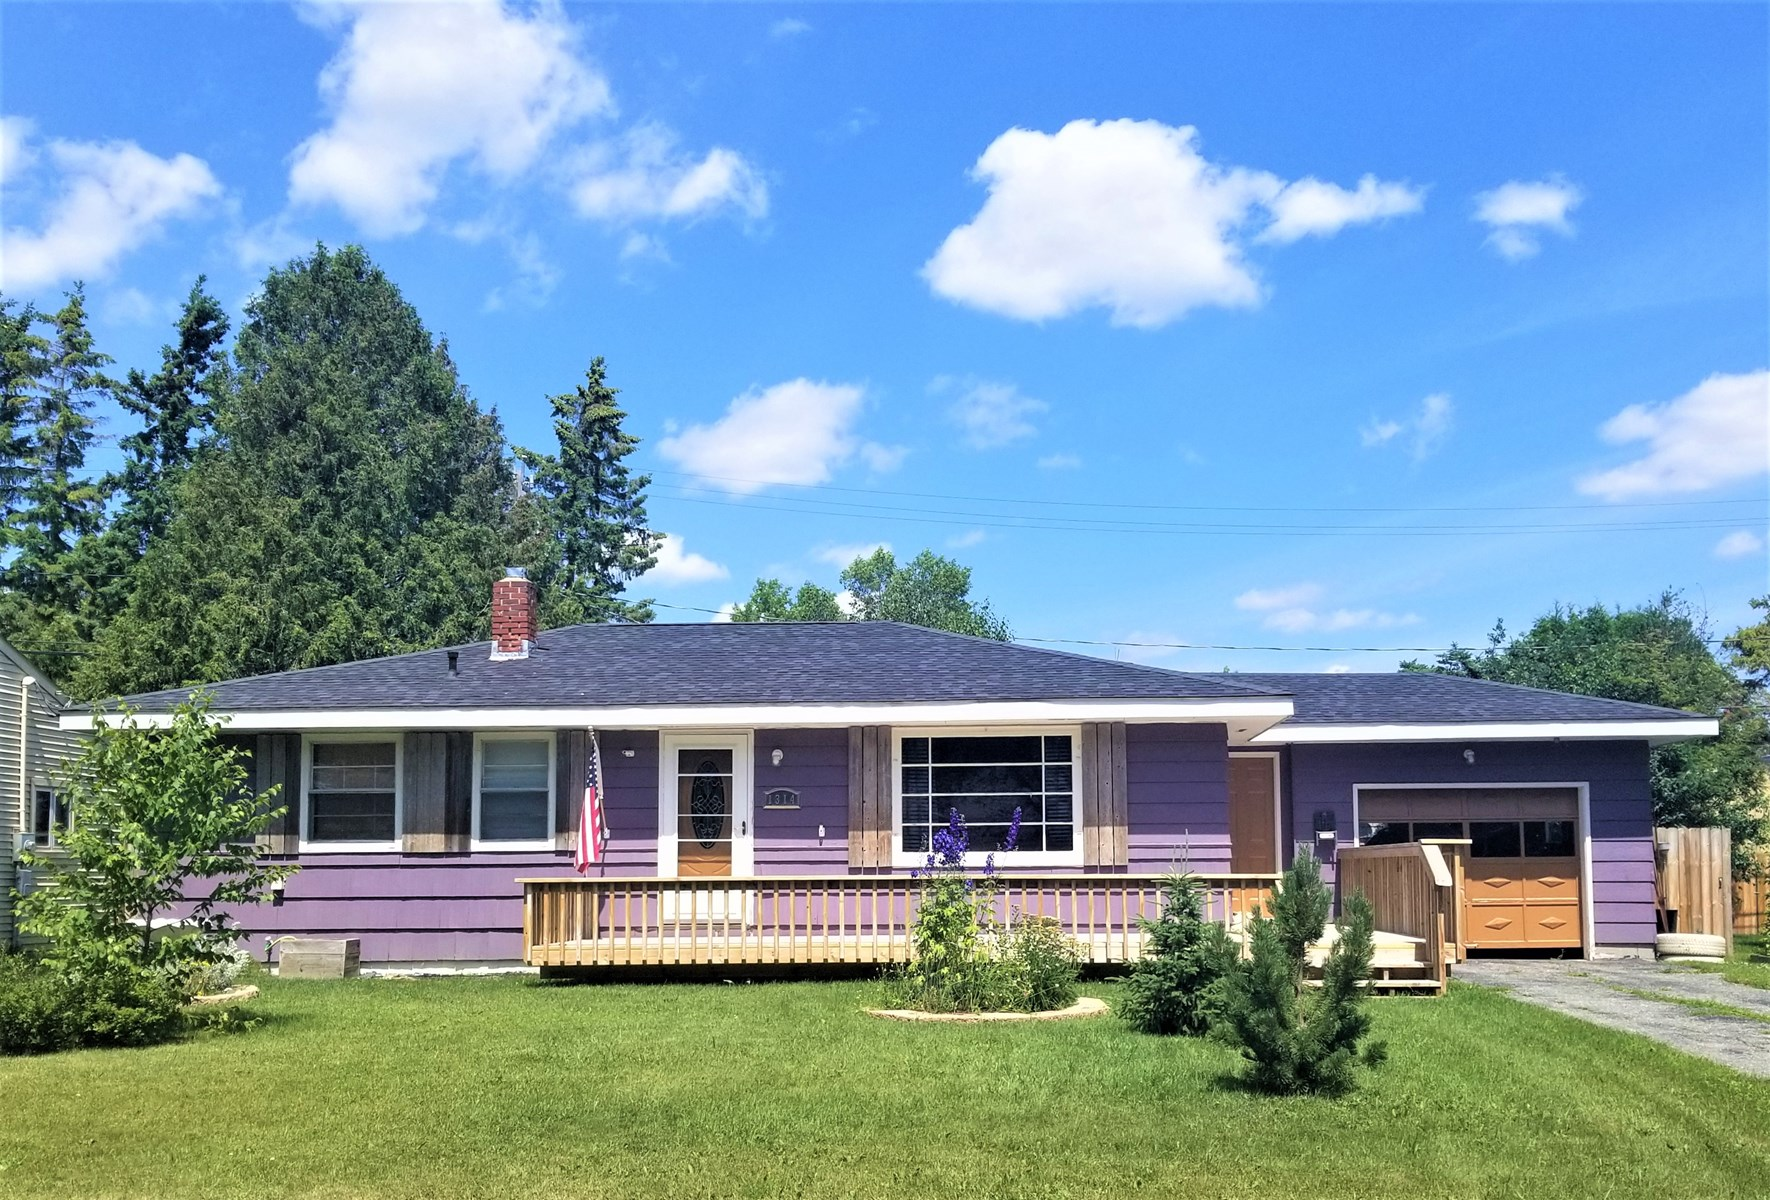 Home in town for sale, International Falls, MN